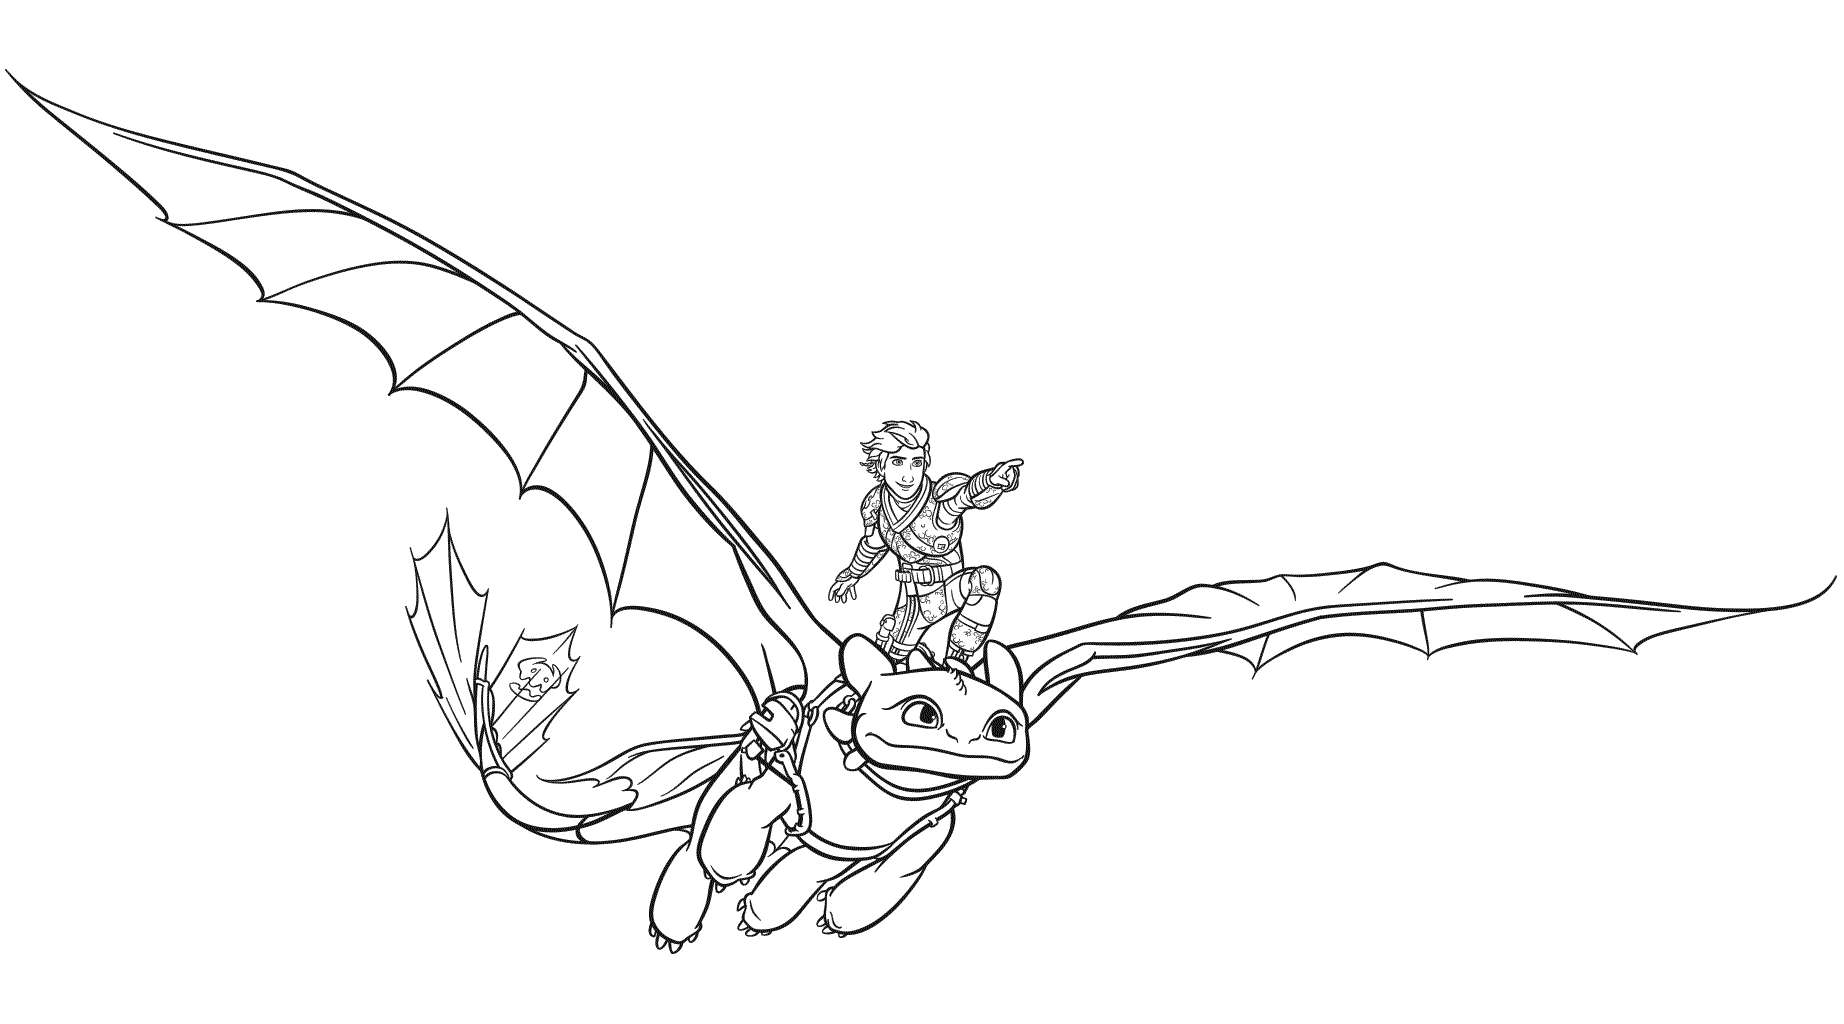 how to train your dragon coloring pages toothless how to train your dragon coloring pages and activity sheets toothless your pages coloring to train how dragon